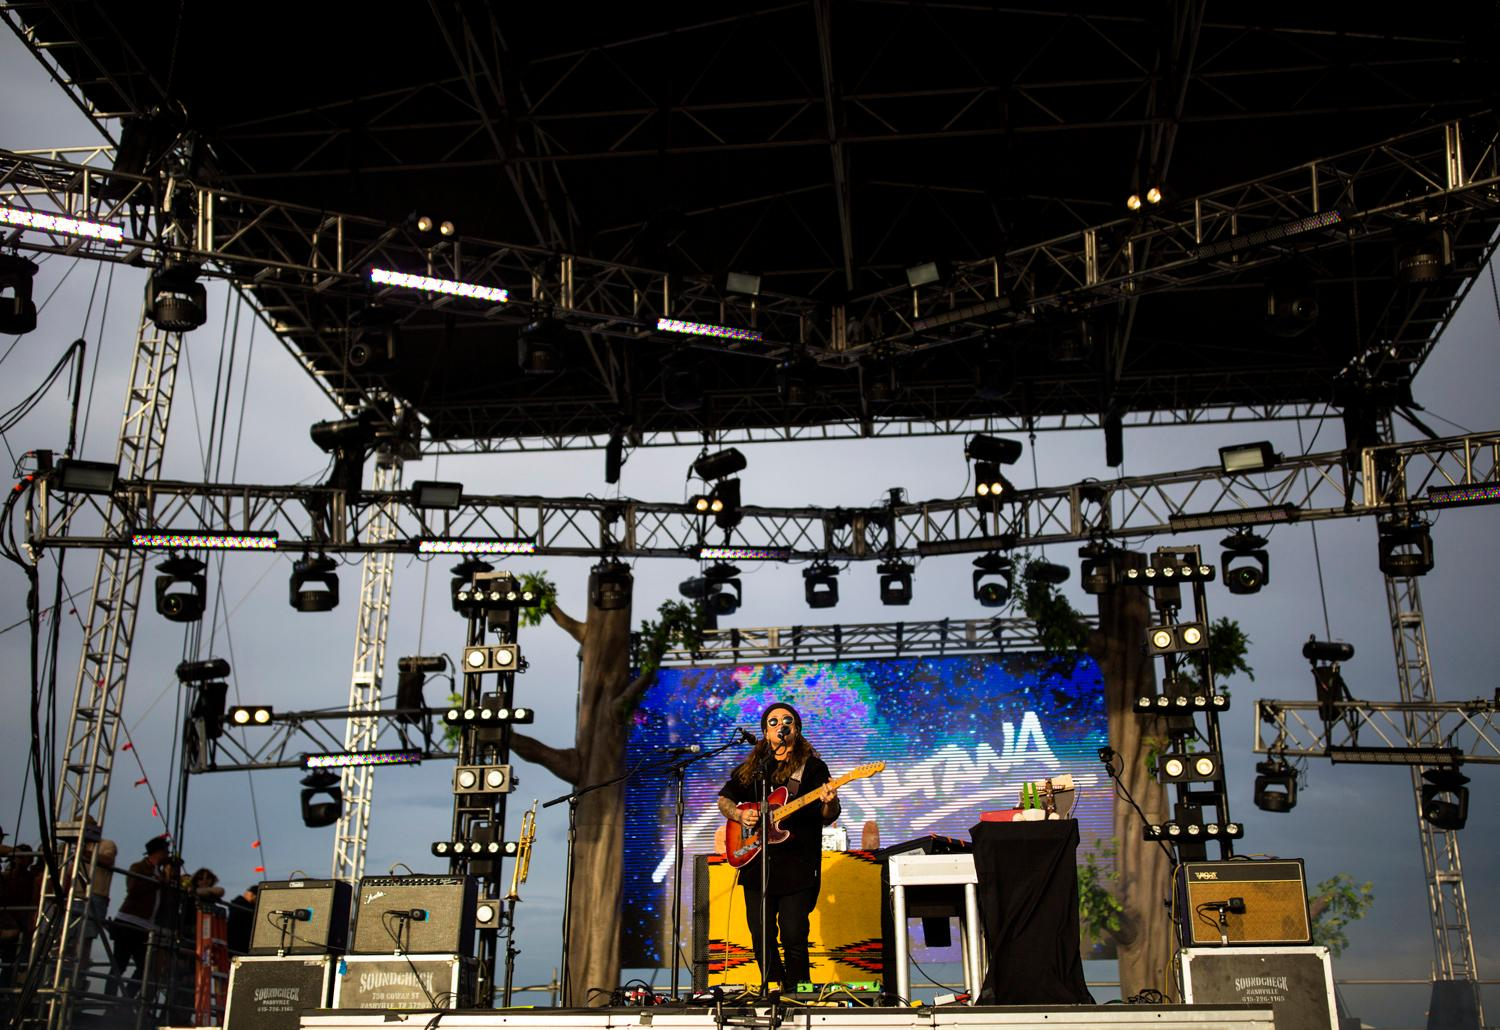 Tash Sultana performed on the first day of the annual Sasquatch! Music Festival. The three-day festival runs throughout the Memorial Day Weekend, from May 25-27, 2018. (Sy Bean / Seattle Refined)